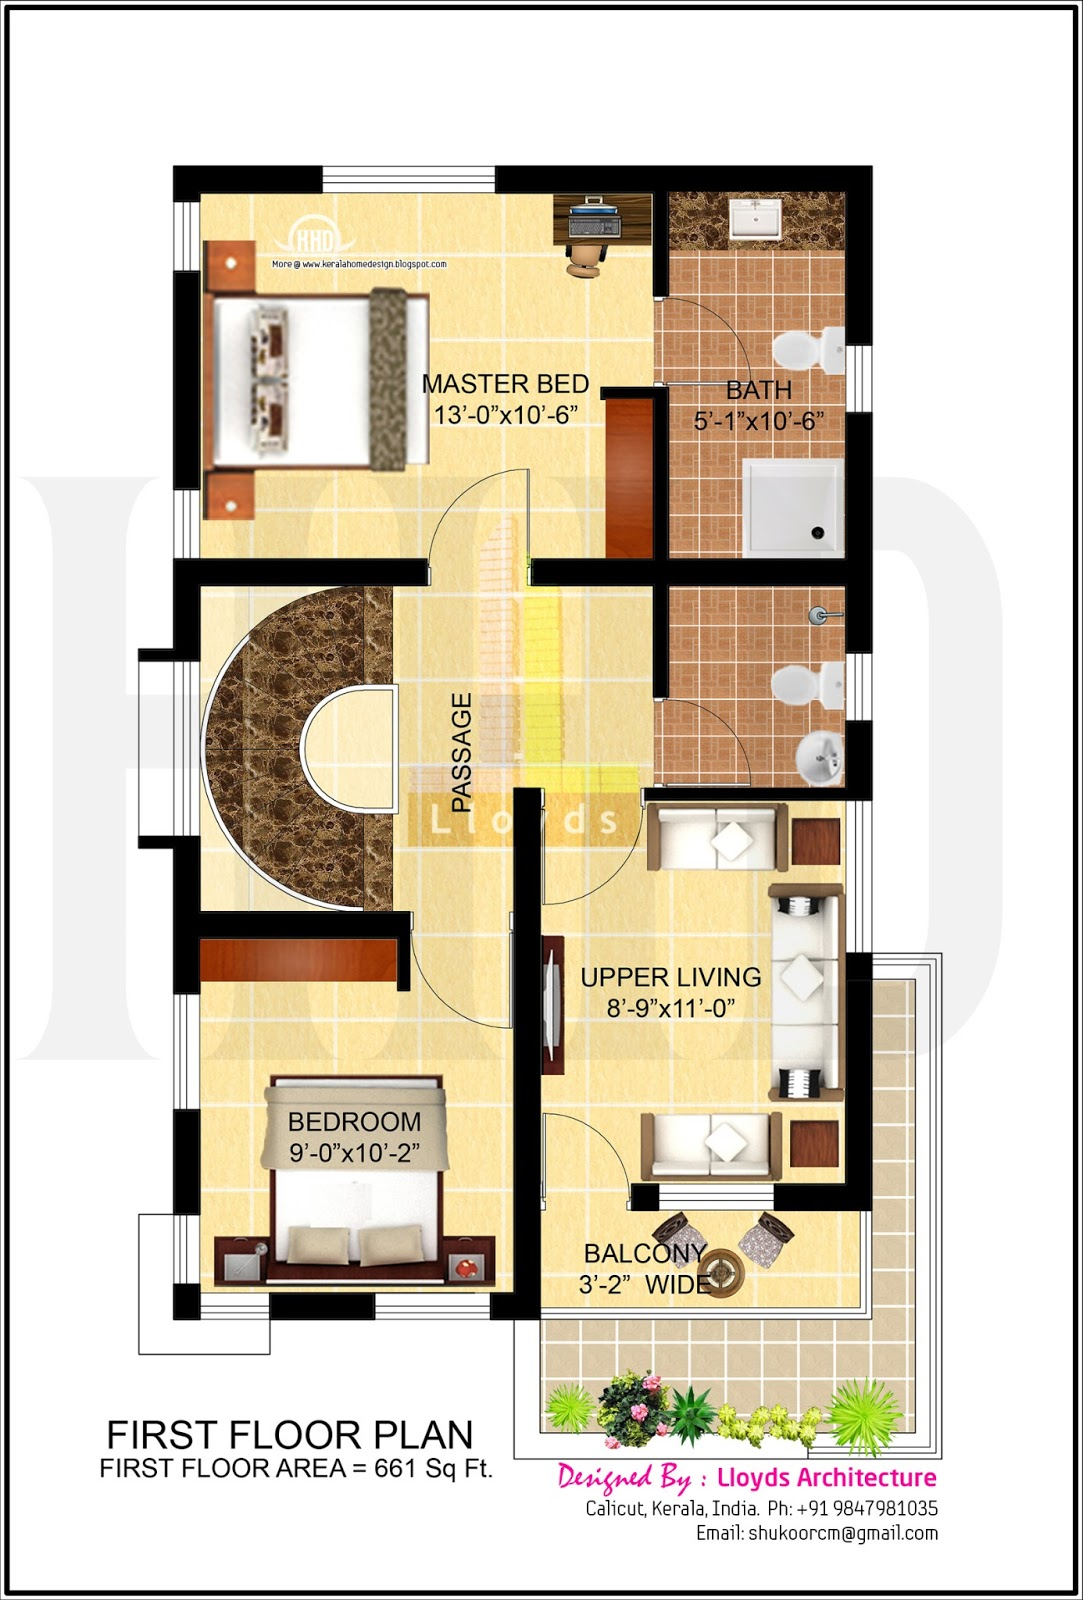 4 bedroom house plan in less than 3 cents kerala home for 1st floor house plan india